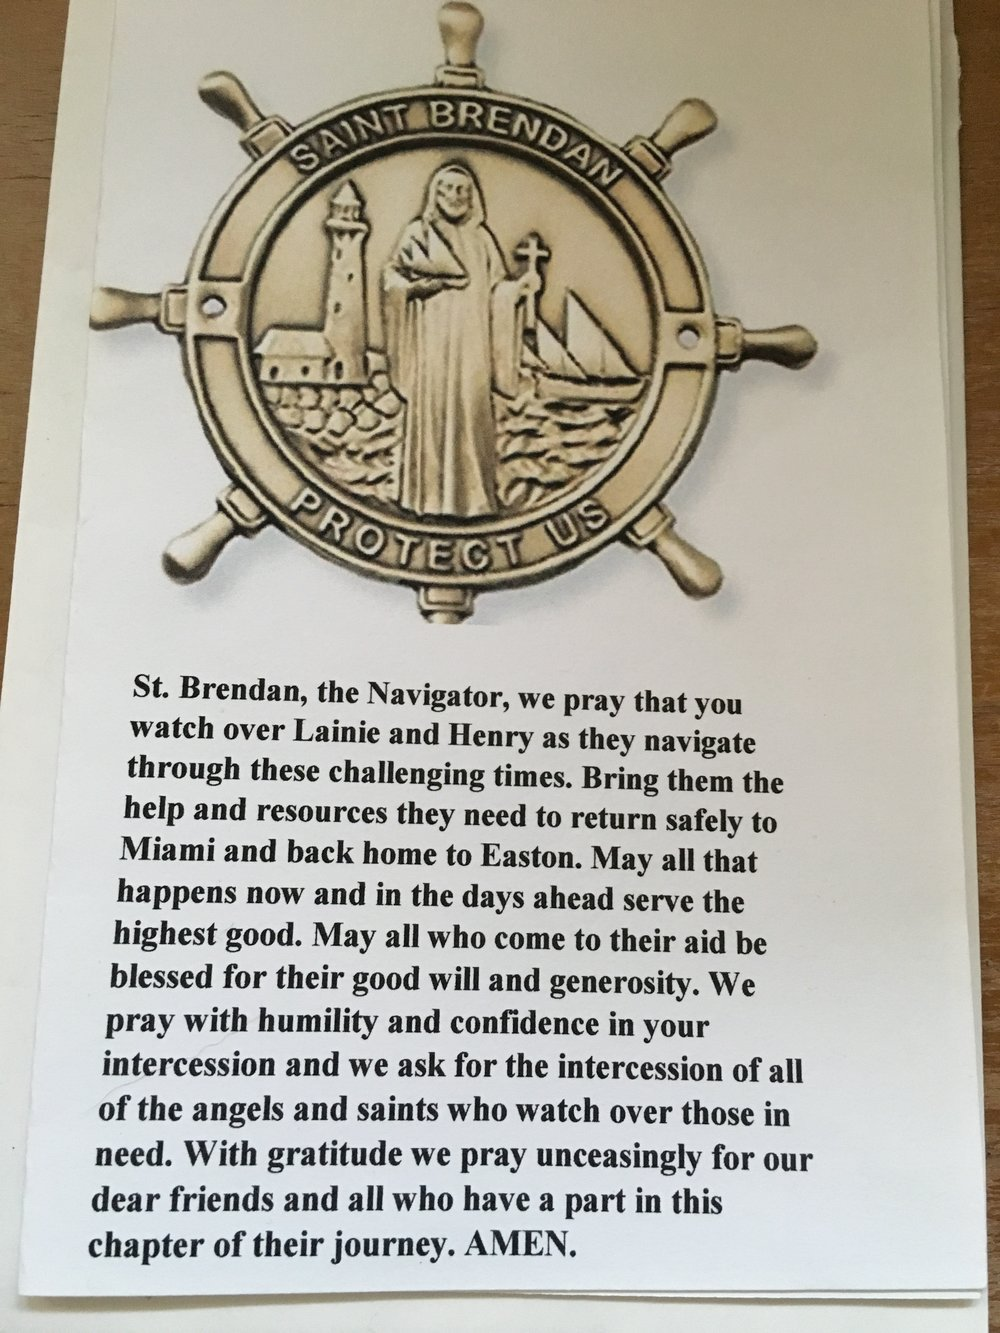 When we returned from our roundtrip sailing adventure to the Bahamas, we found the above prayer in our mailbox